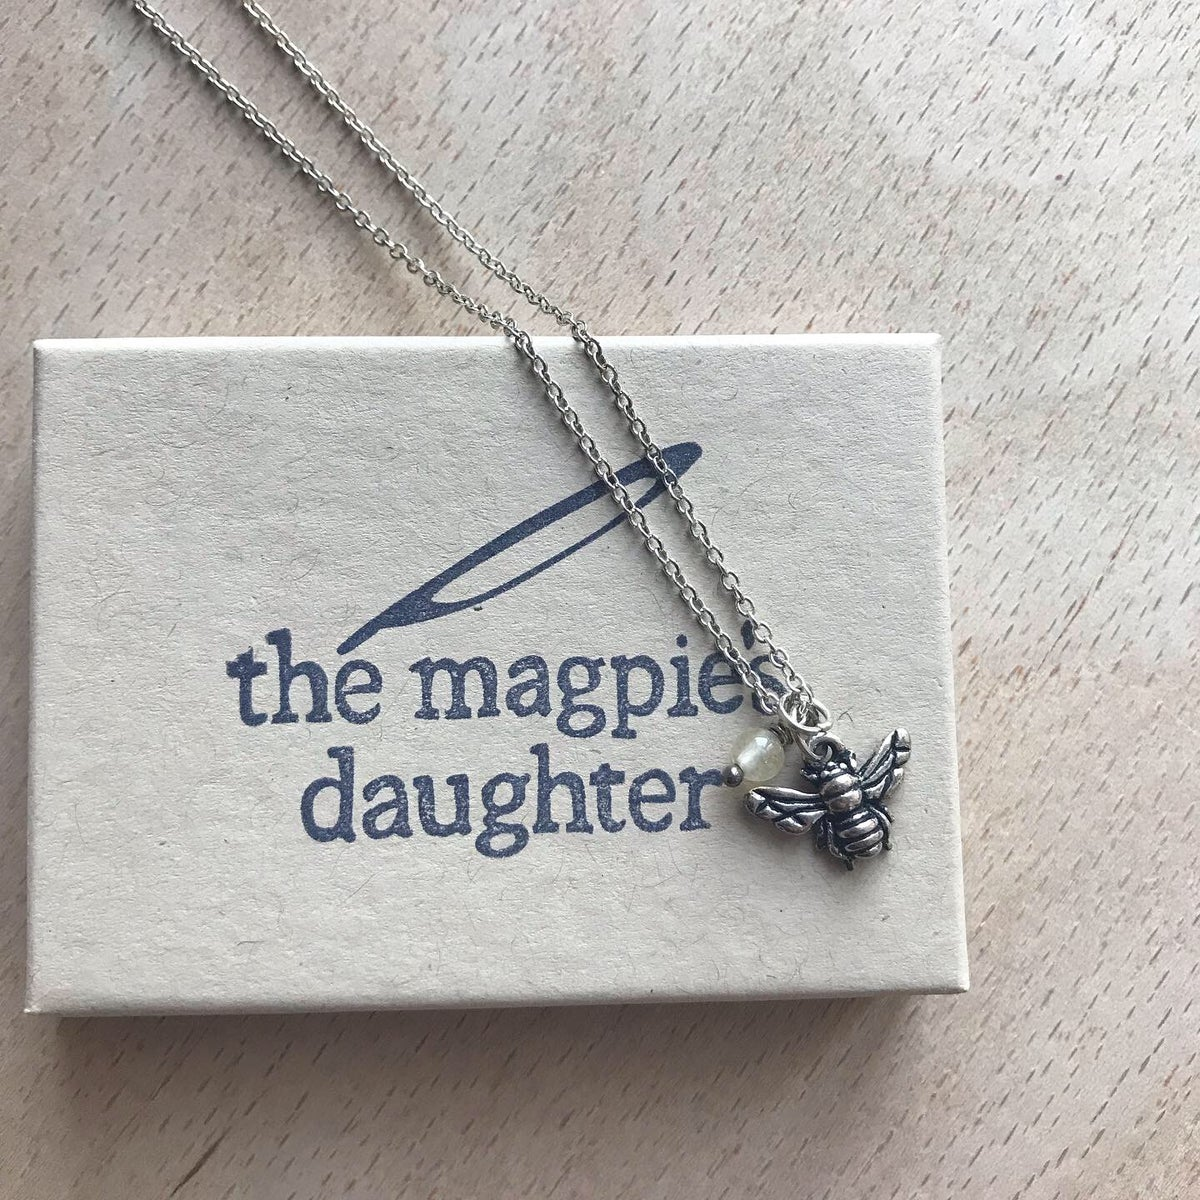 Image of Bee Charm necklace by The Magpie's Daughter